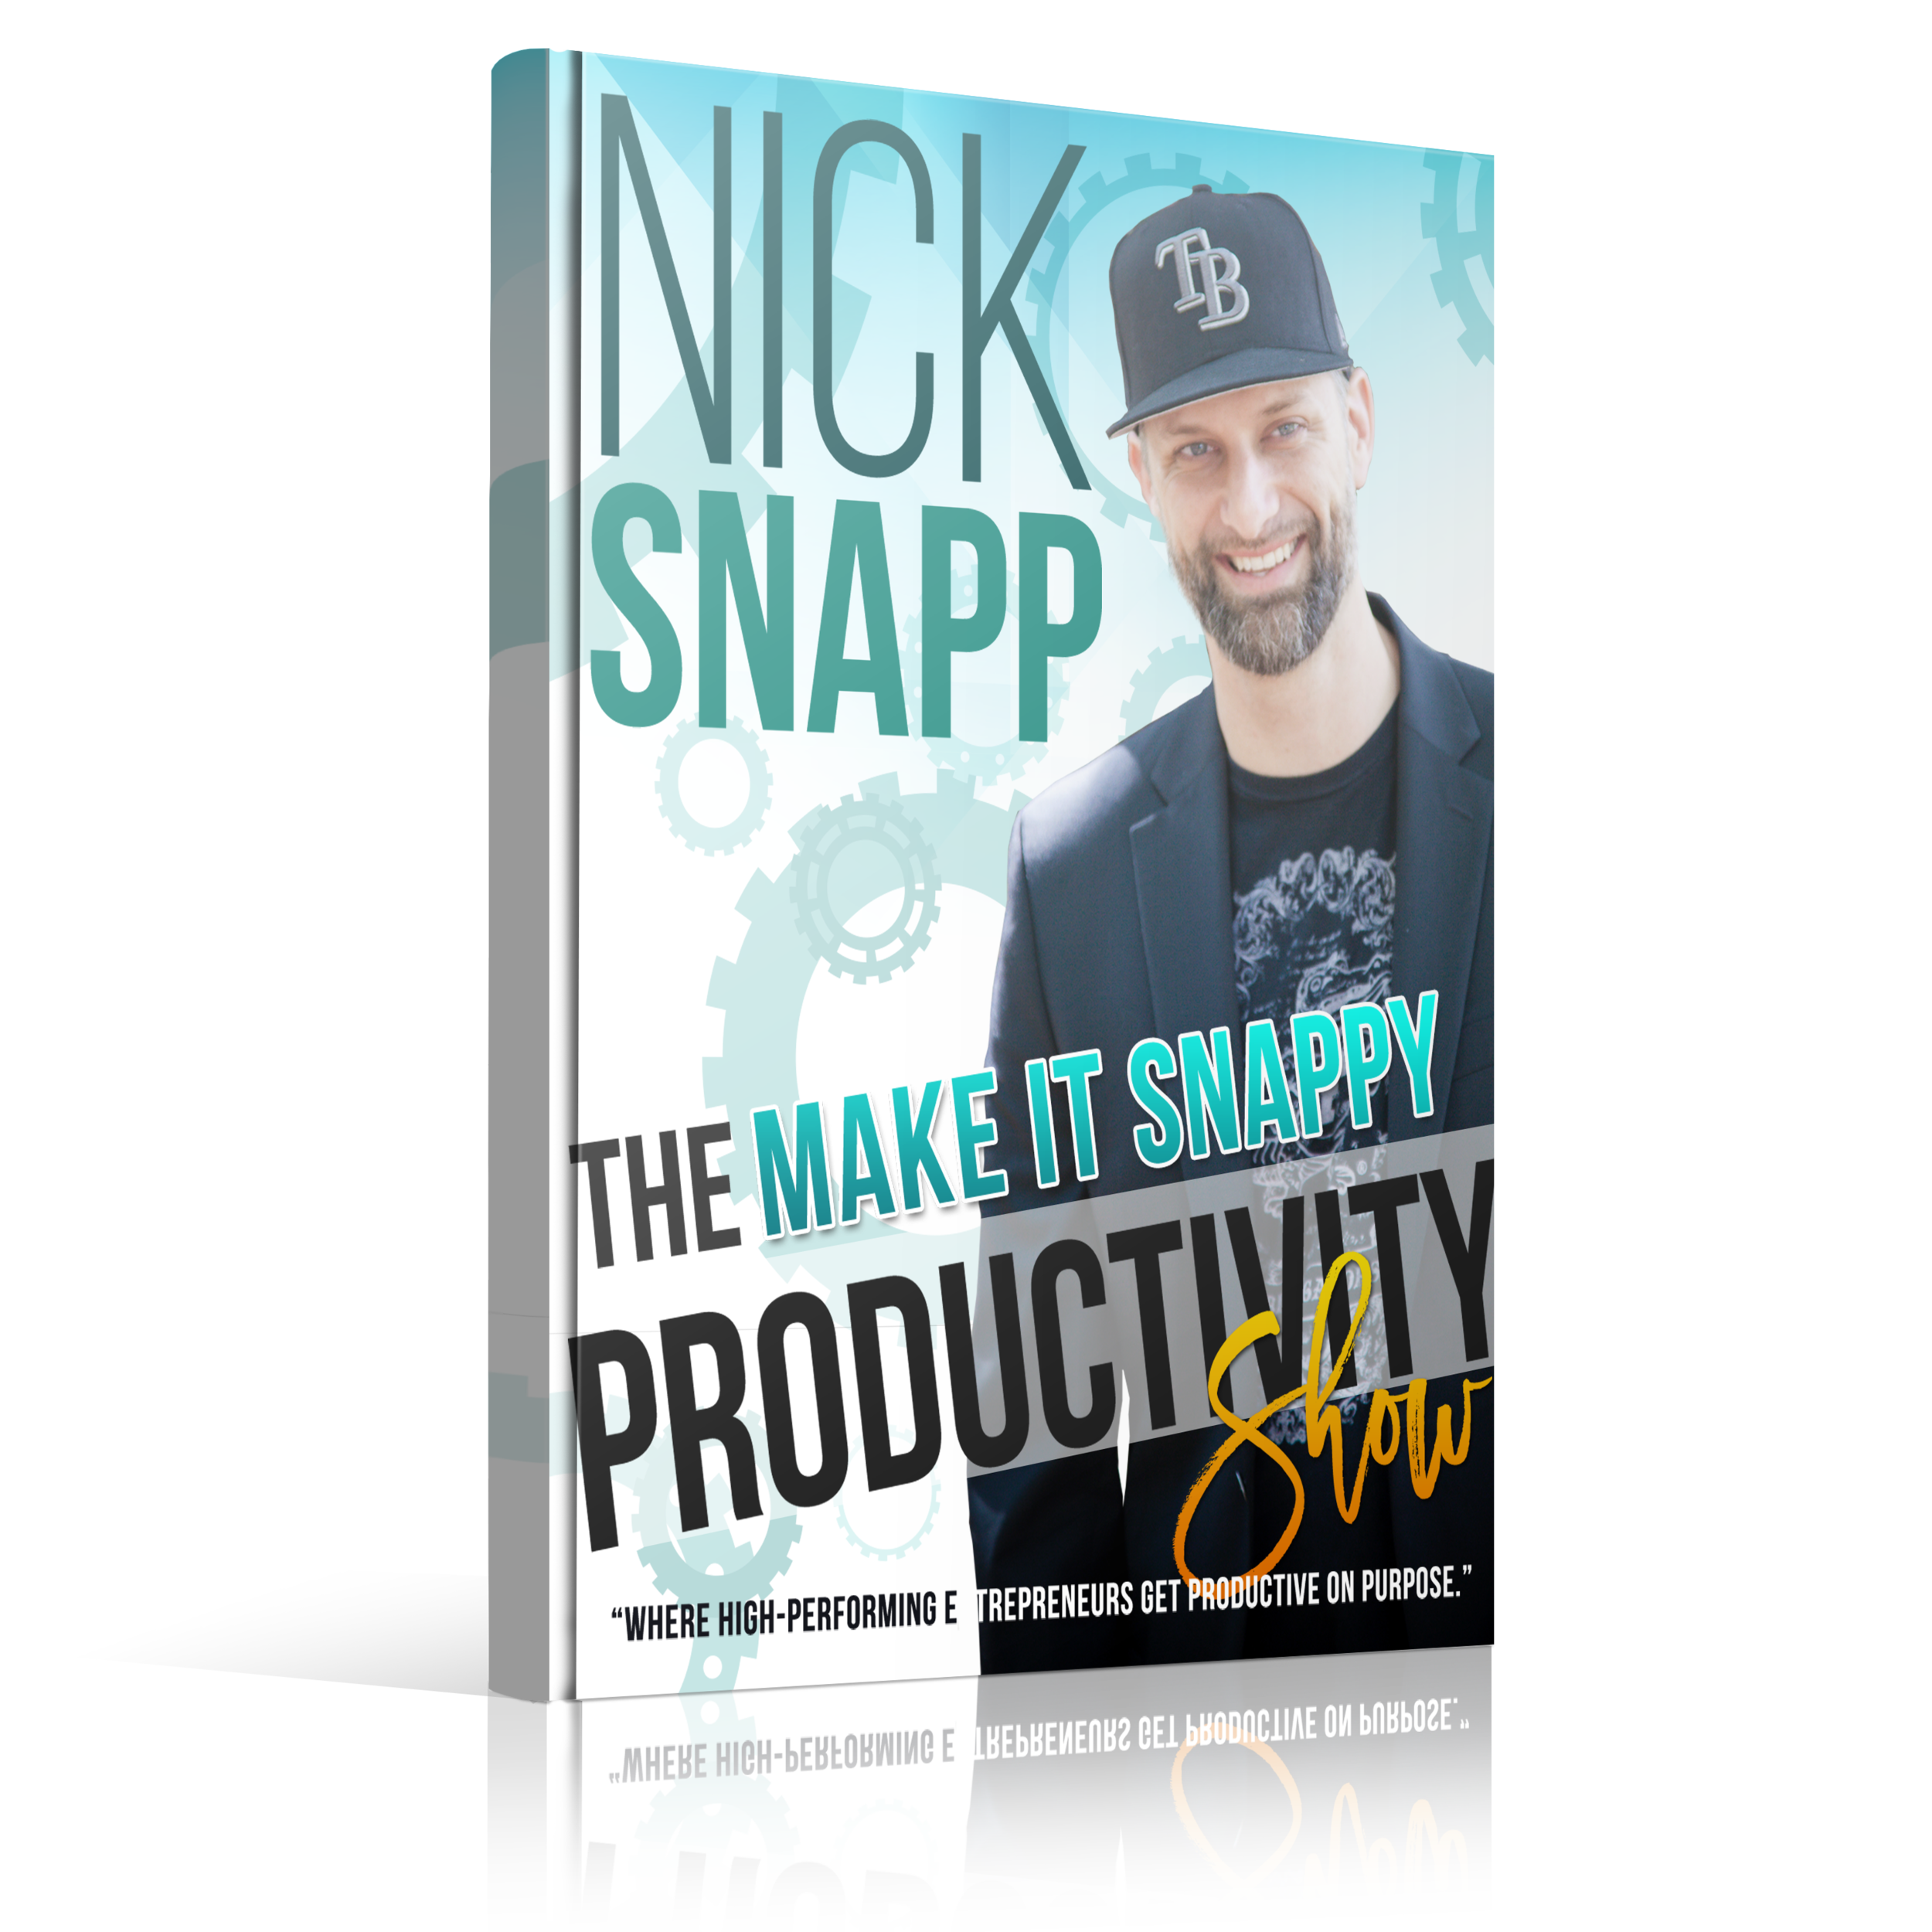 Nick_snapp_3D_cover.png